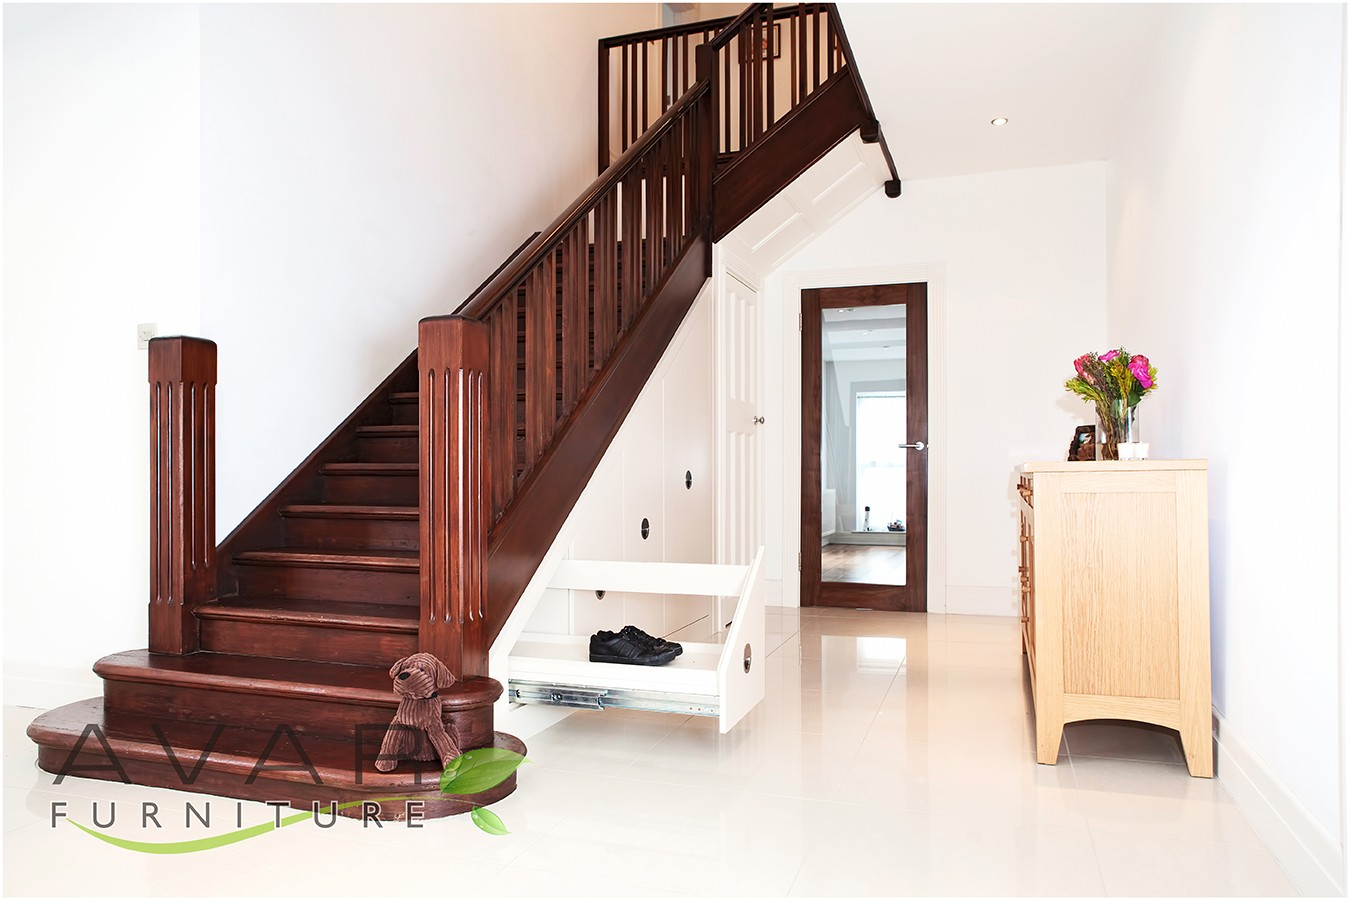 ƸӜƷ Under Stairs Storage Ideas Gallery 1 North London